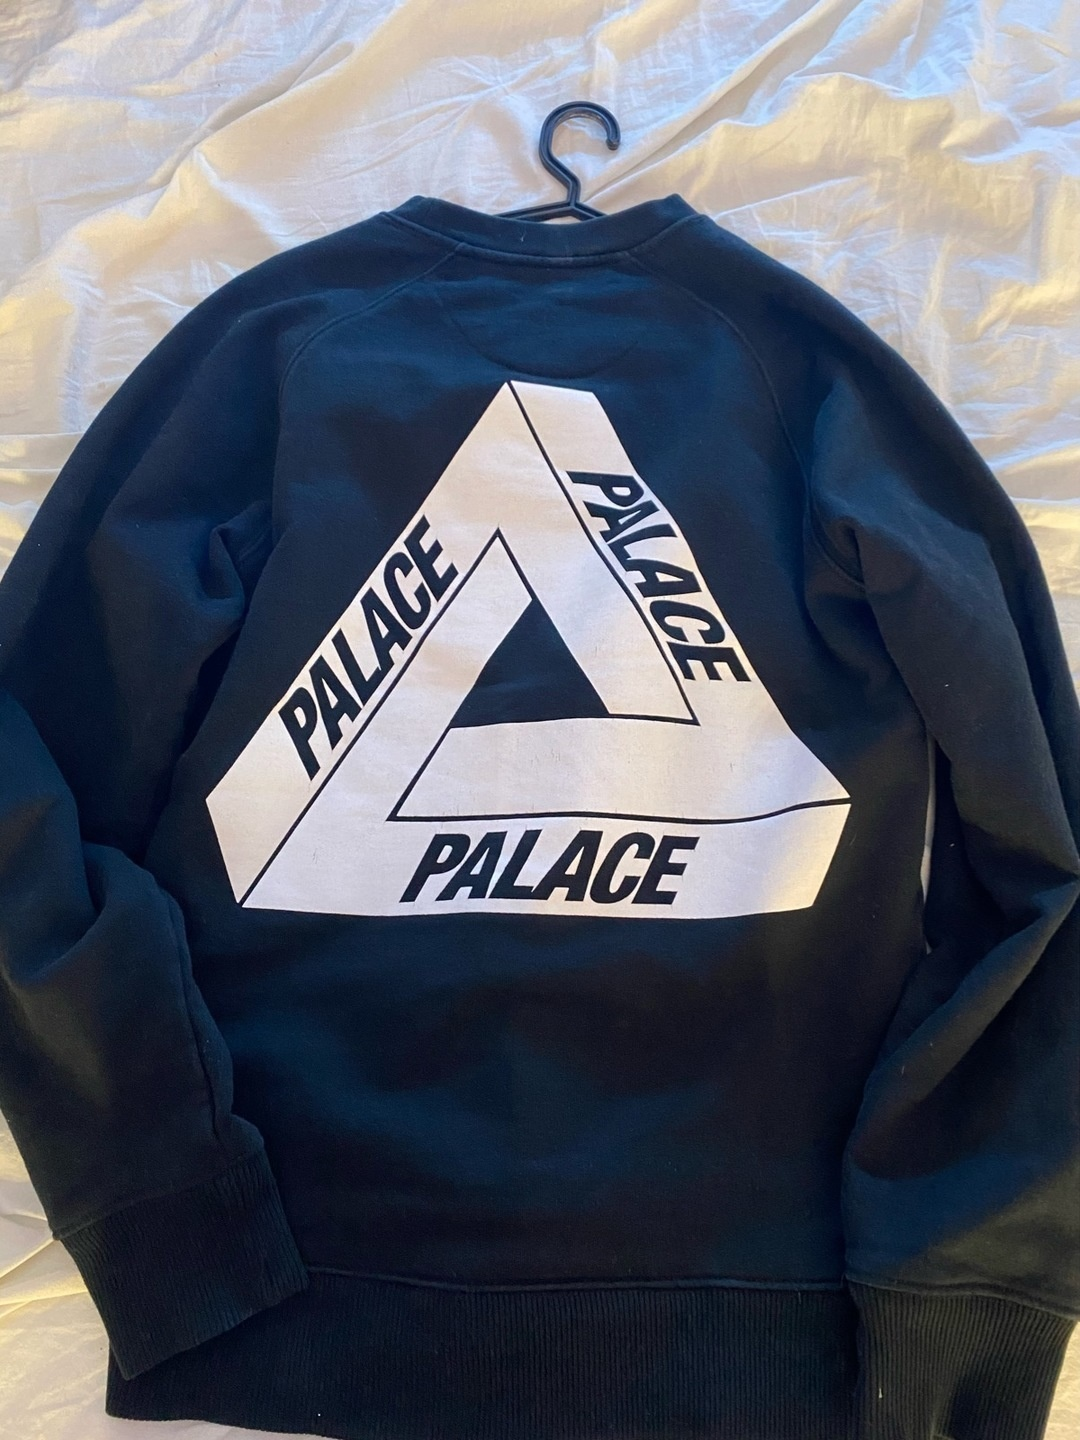 Women's hoodies & sweatshirts - PALACE photo 2